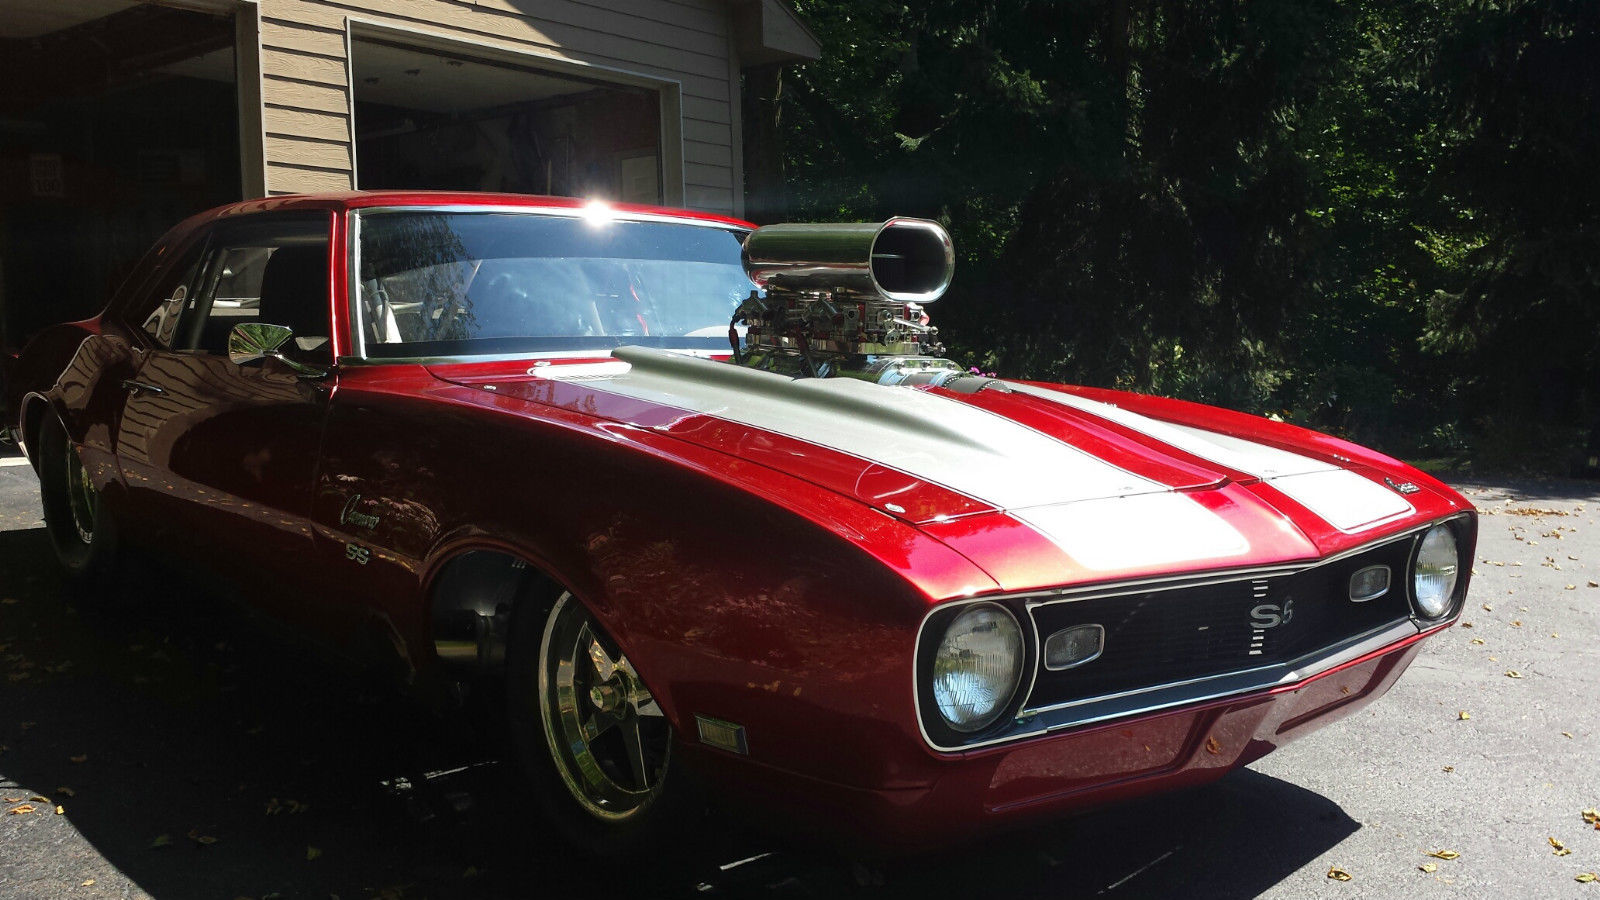 1968 Chevrolet Camaro SS - Muscle Car